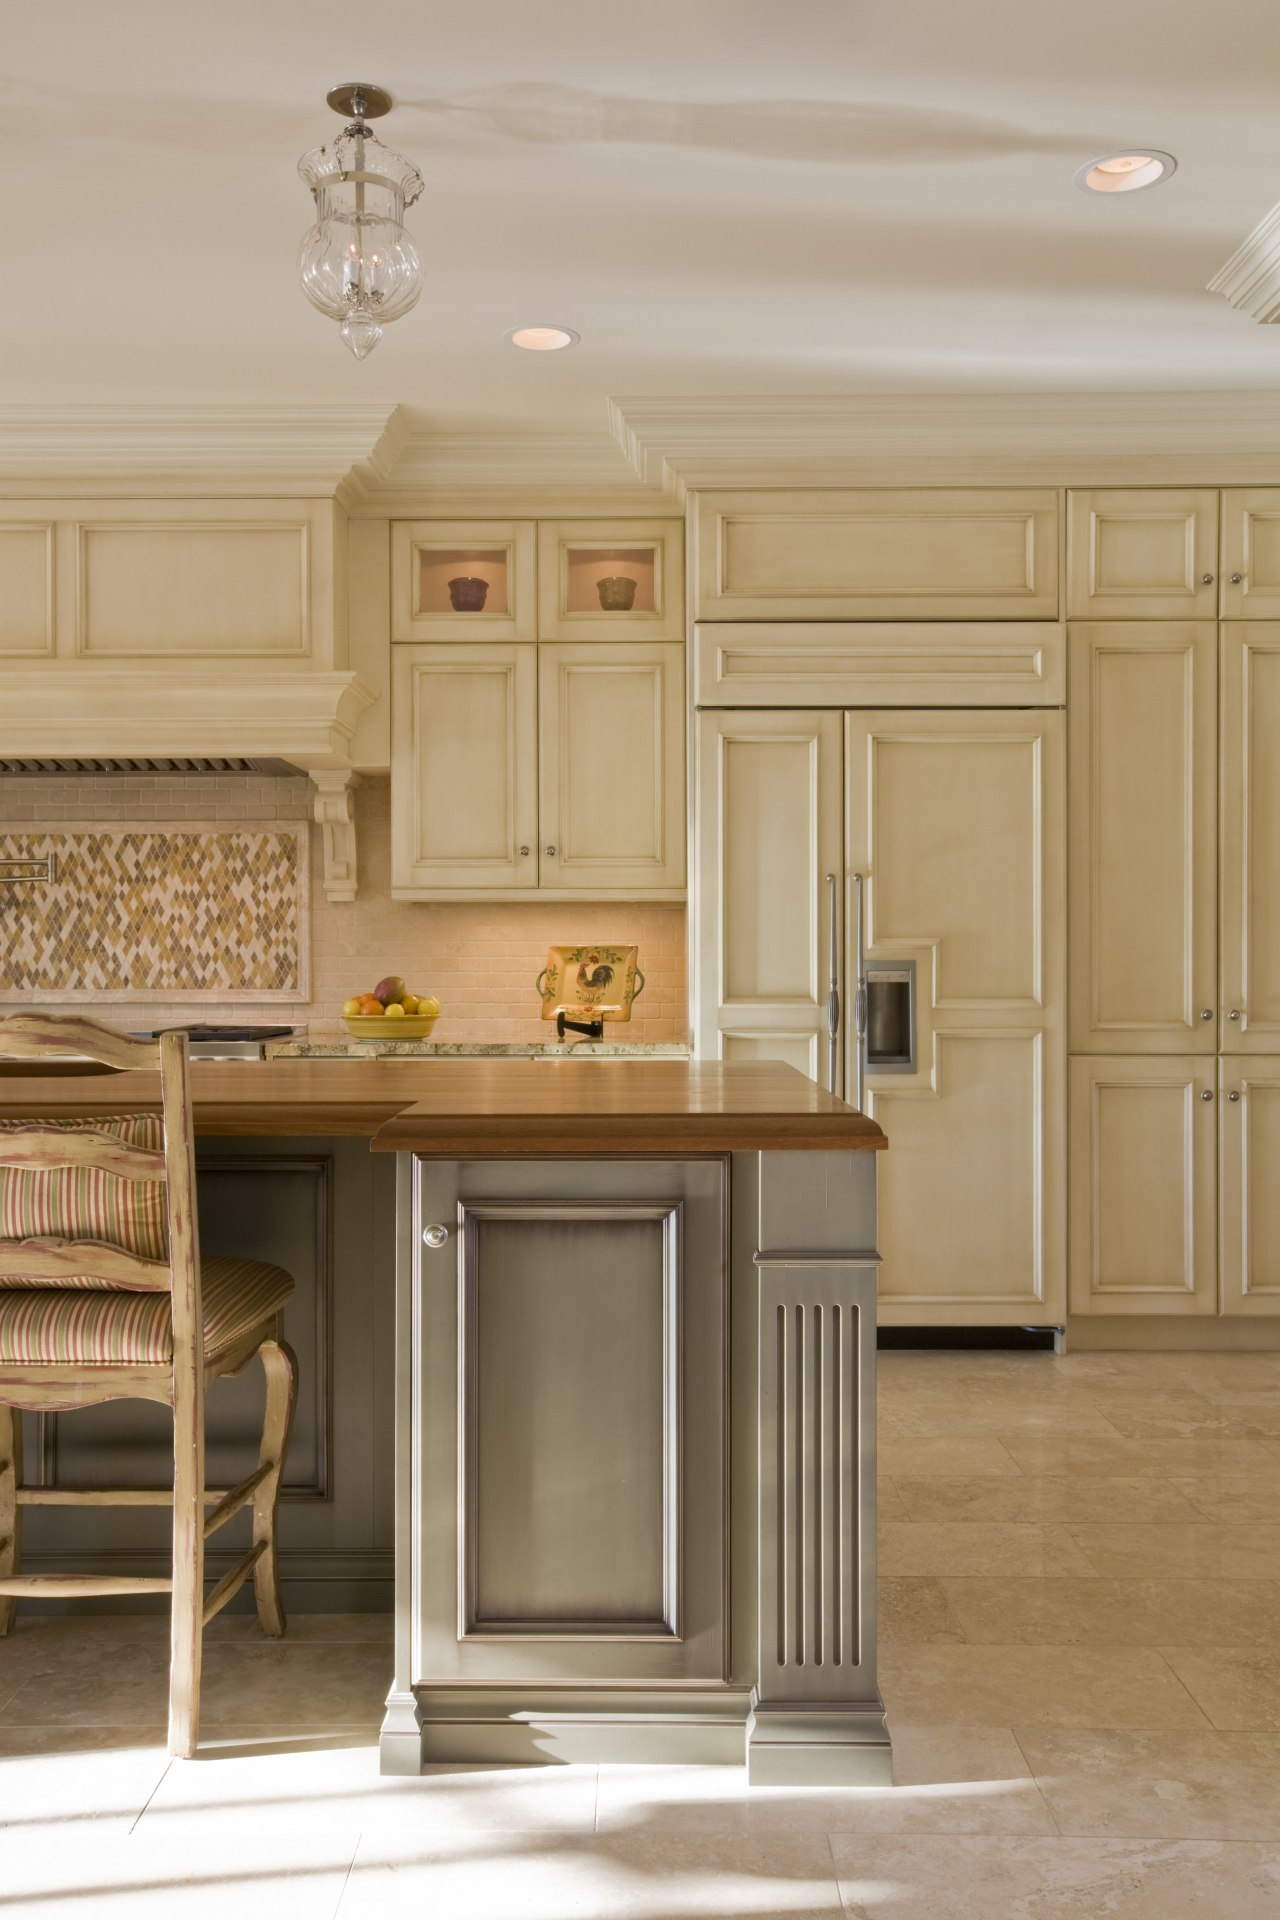 The semi-integrated refrigerator in this kitchen by Rill cabinetry, countertop, cuisine classique, floor, flooring, furniture, hardwood, home, interior design, kitchen, room, wood flooring, orange, gray, brown